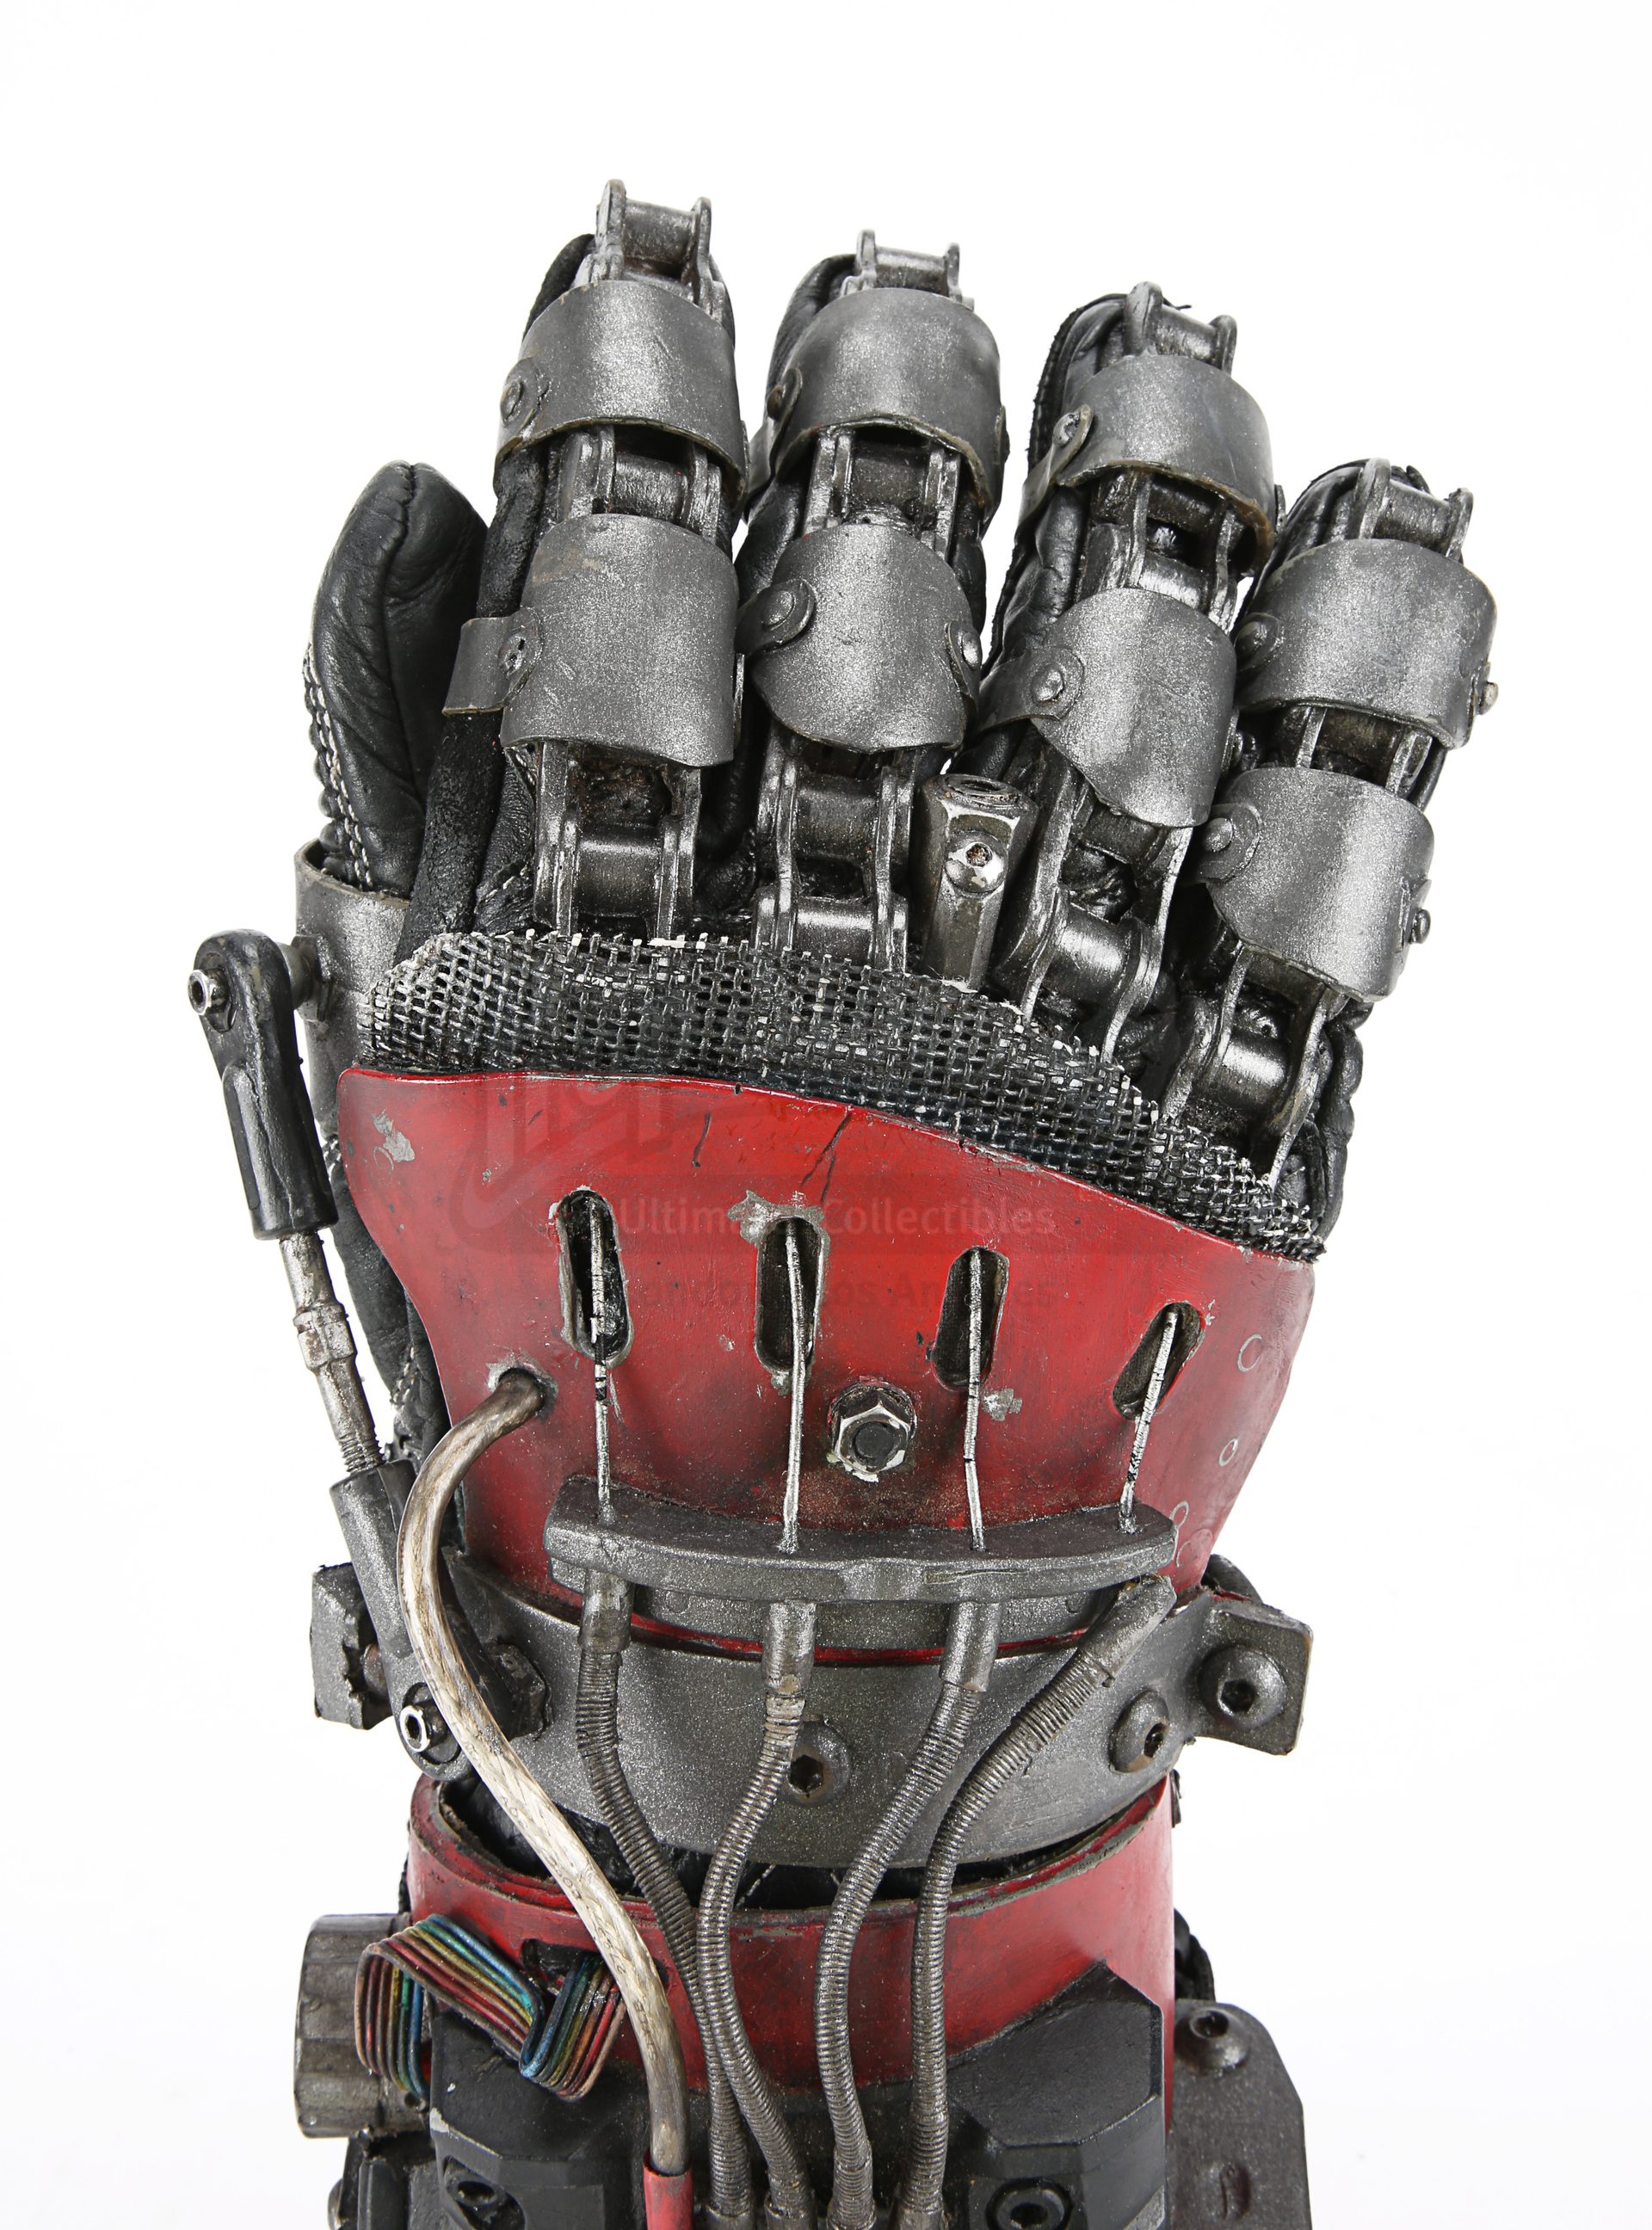 ASH VS EVIL DEAD (TV SERIES) - Ash's (Bruce Campbell) Mechanical Hand - Image 7 of 12